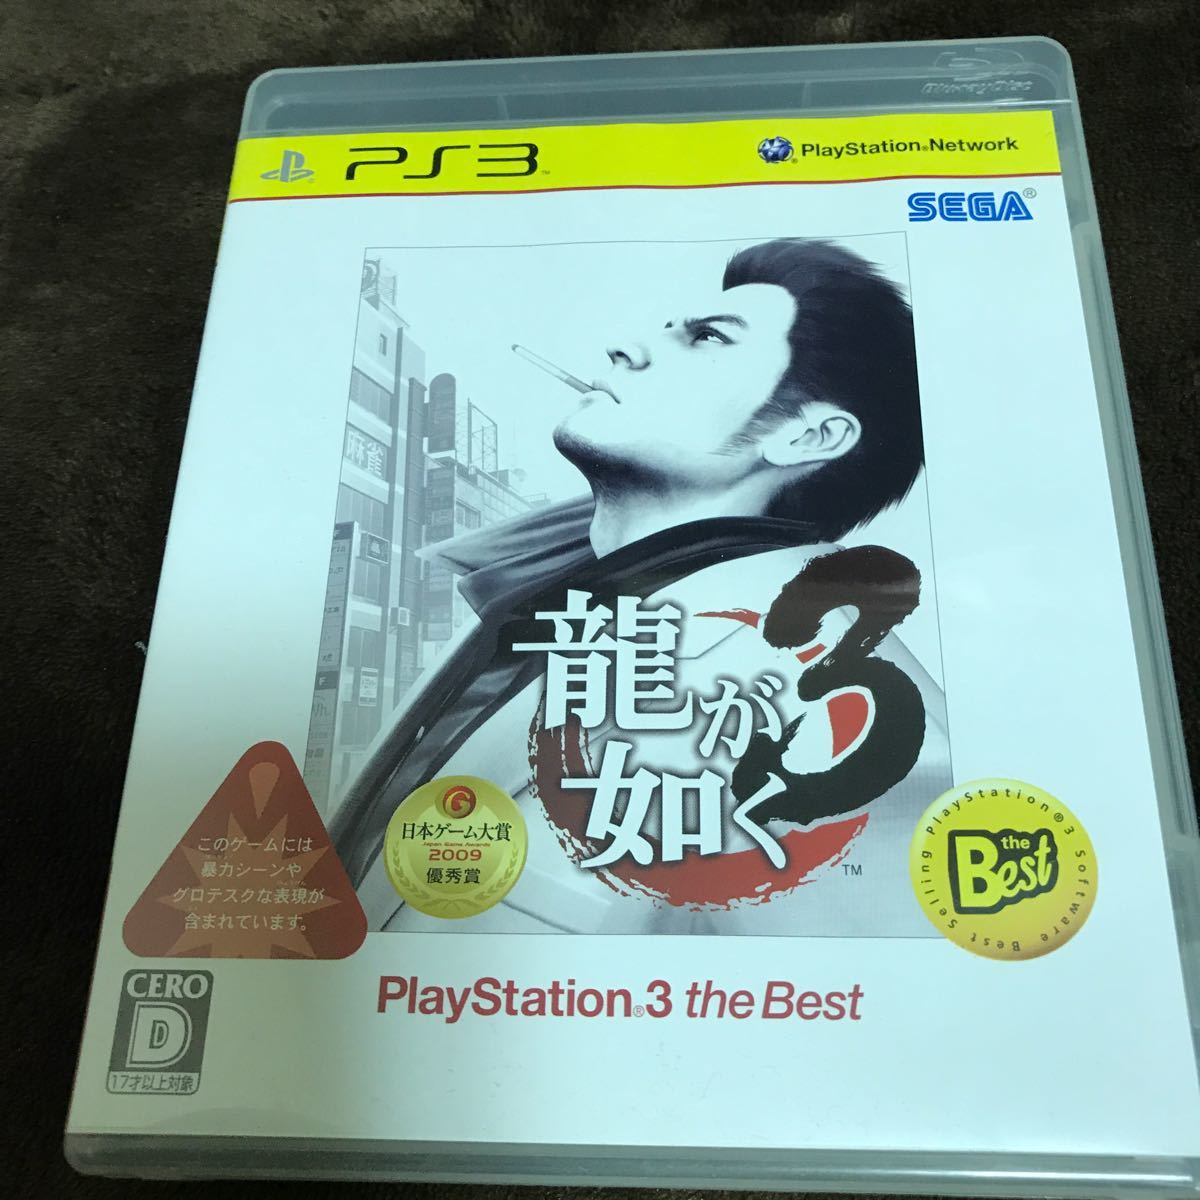 【PS3】 龍が如く3 [PS3 the Best]